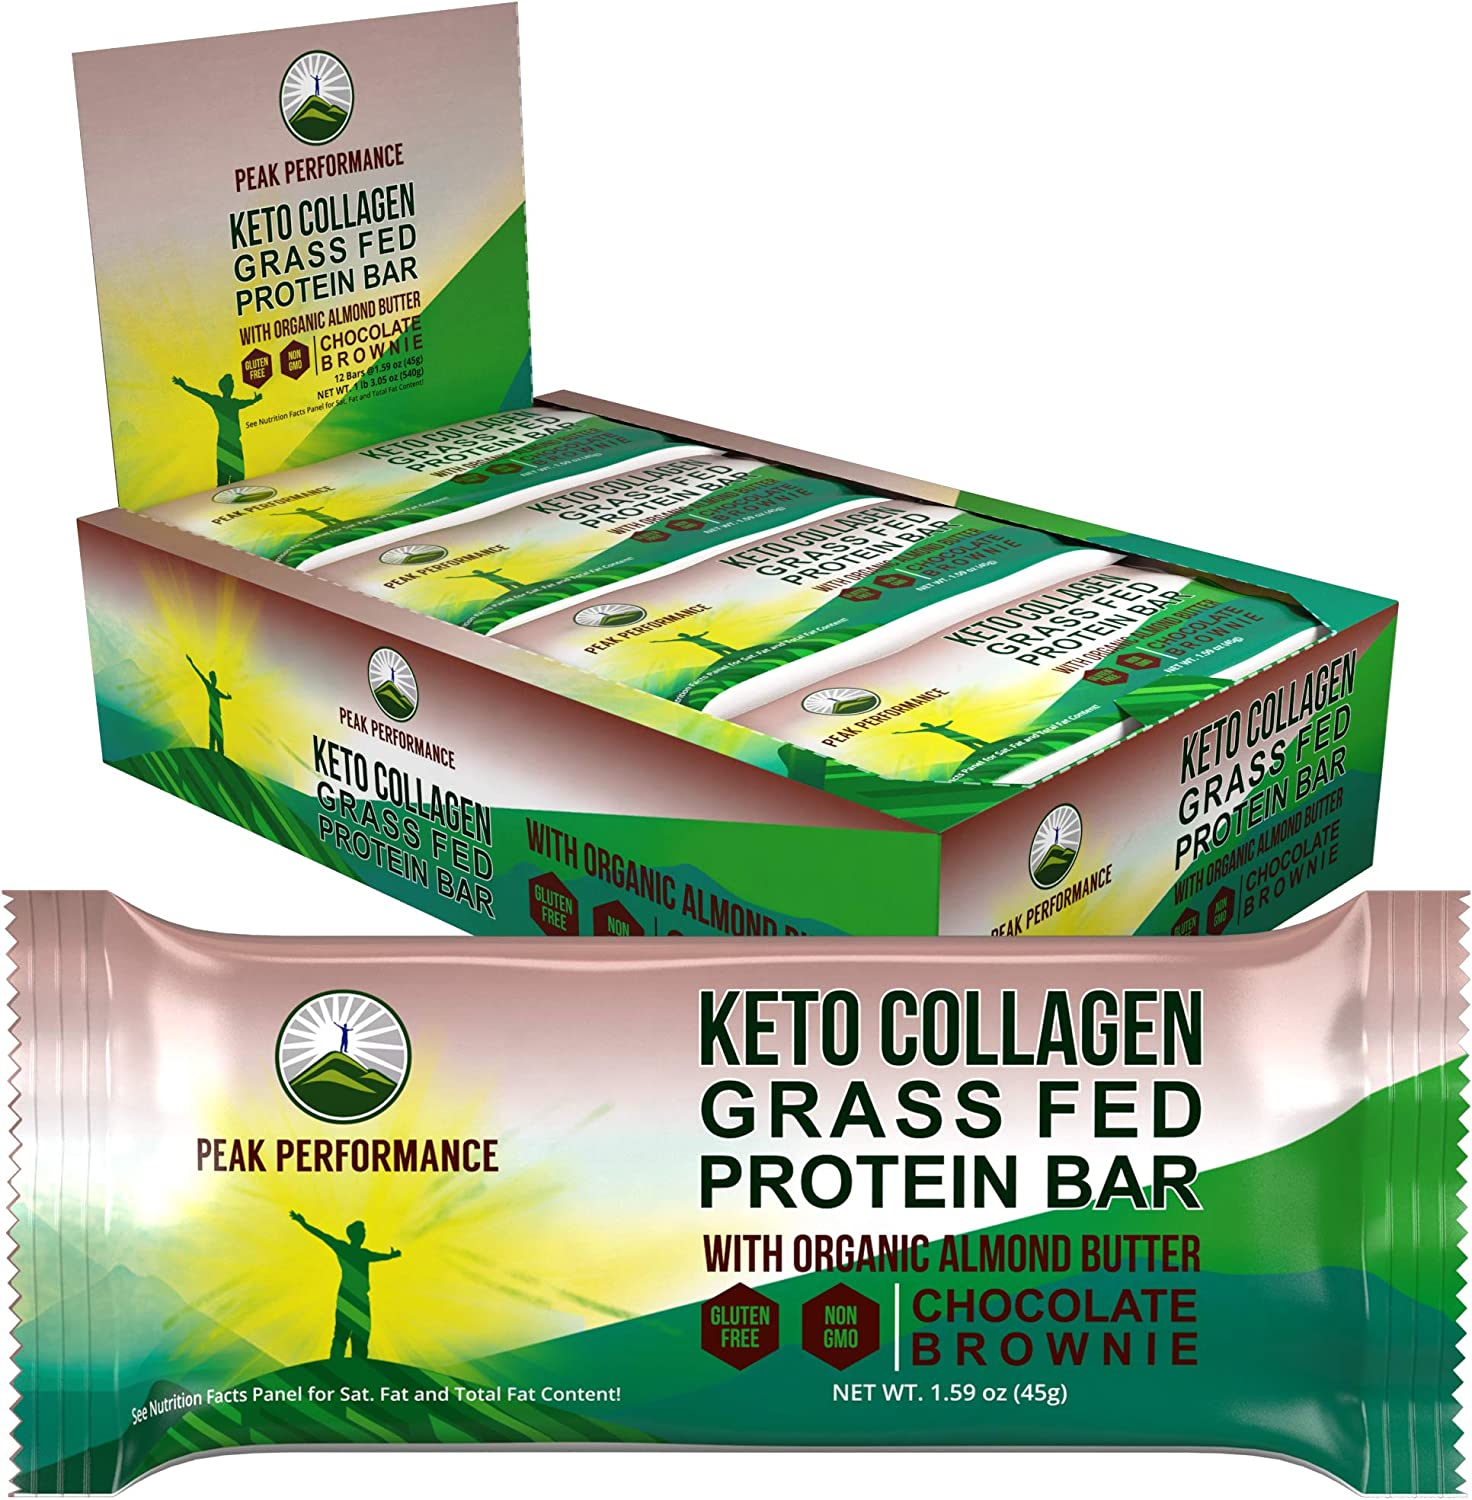 Keto Bars - Grass Fed Collagen + Bone Broth Keto Protein Bars with Organic Almond Butter. 12 Pack Keto Protein Bar Snacks No Added Sugar. 4 Flavors Keto + Paleo Perfect Snack Bar. Chocolate Brownie